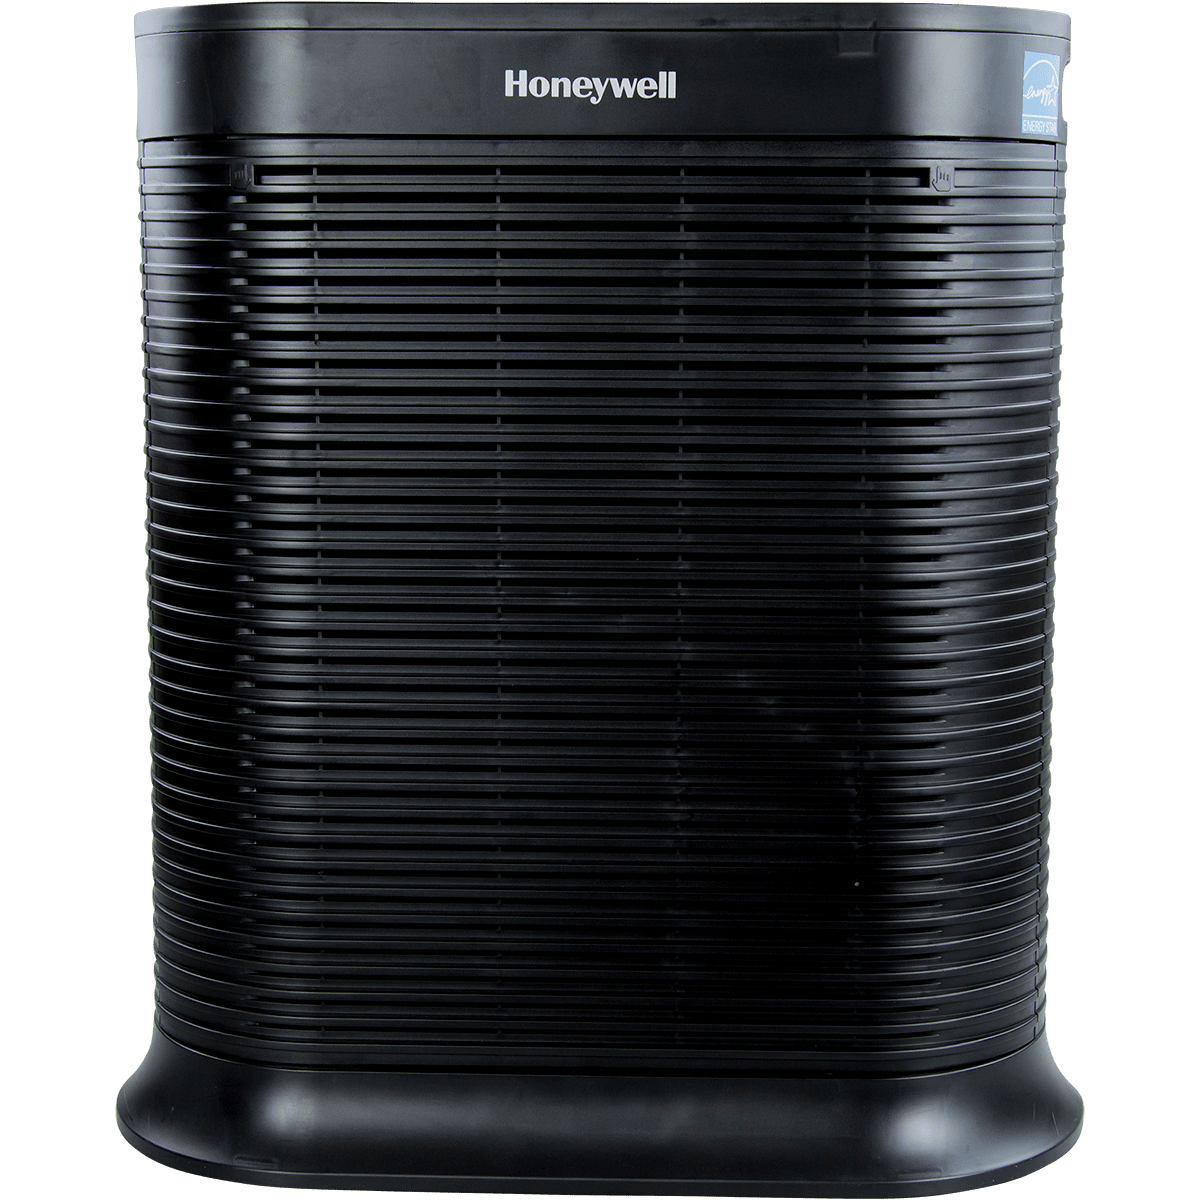 Honeywell HPA300 True HEPA Whole Room Allergen Remover Air Purifier ho4060